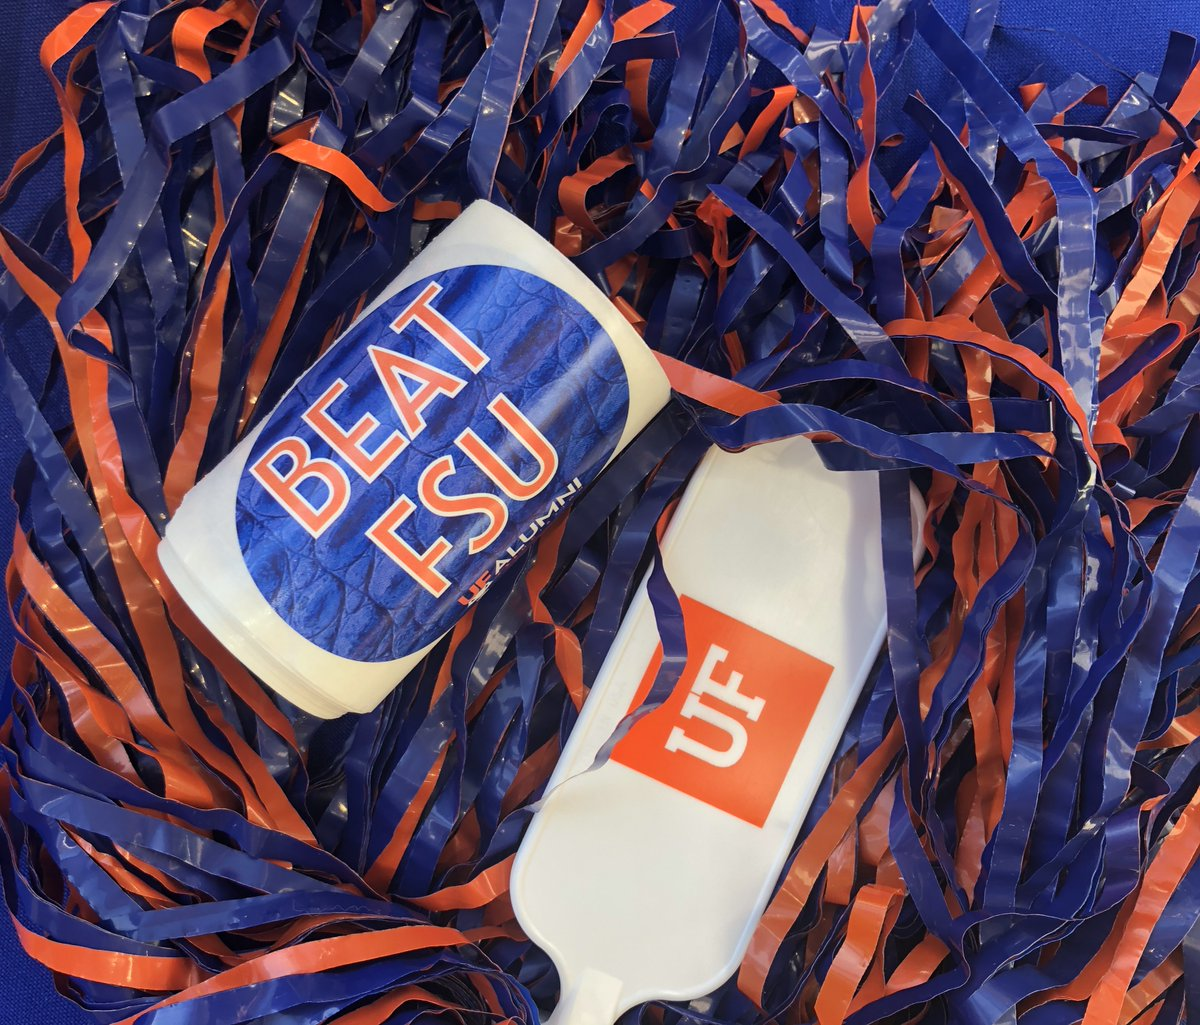 We've got #BEATFSU stickers at Emerson Alumni Hall, get 'em before they're gone! 🐊🏈  #GoGators #GNTatEAH